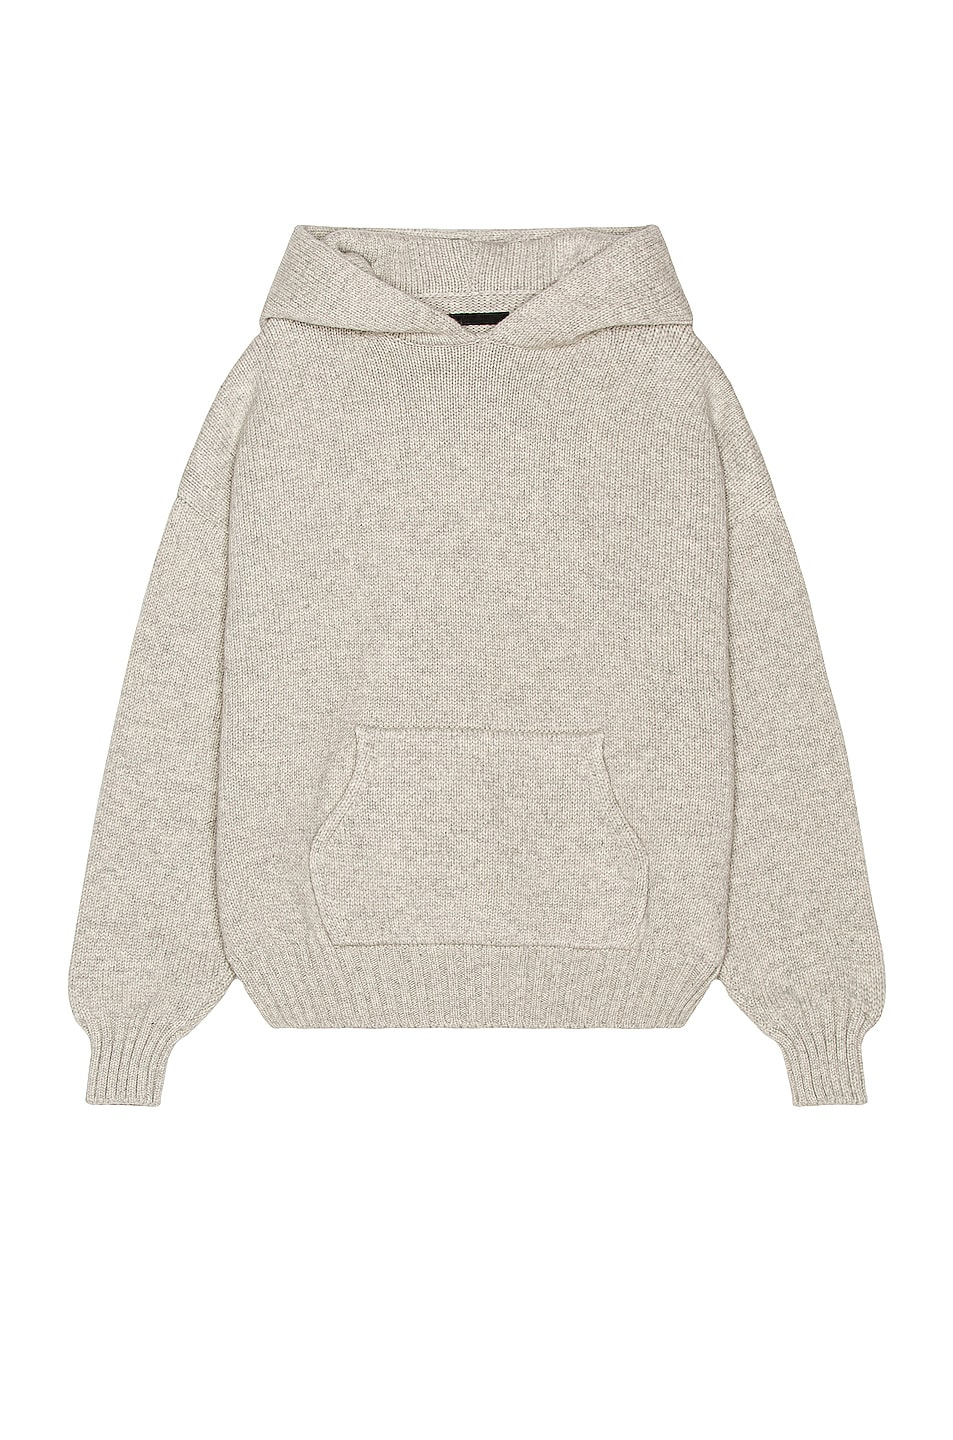 Image 1 of Fear of God Knit Hoodie in Light Heather Grey